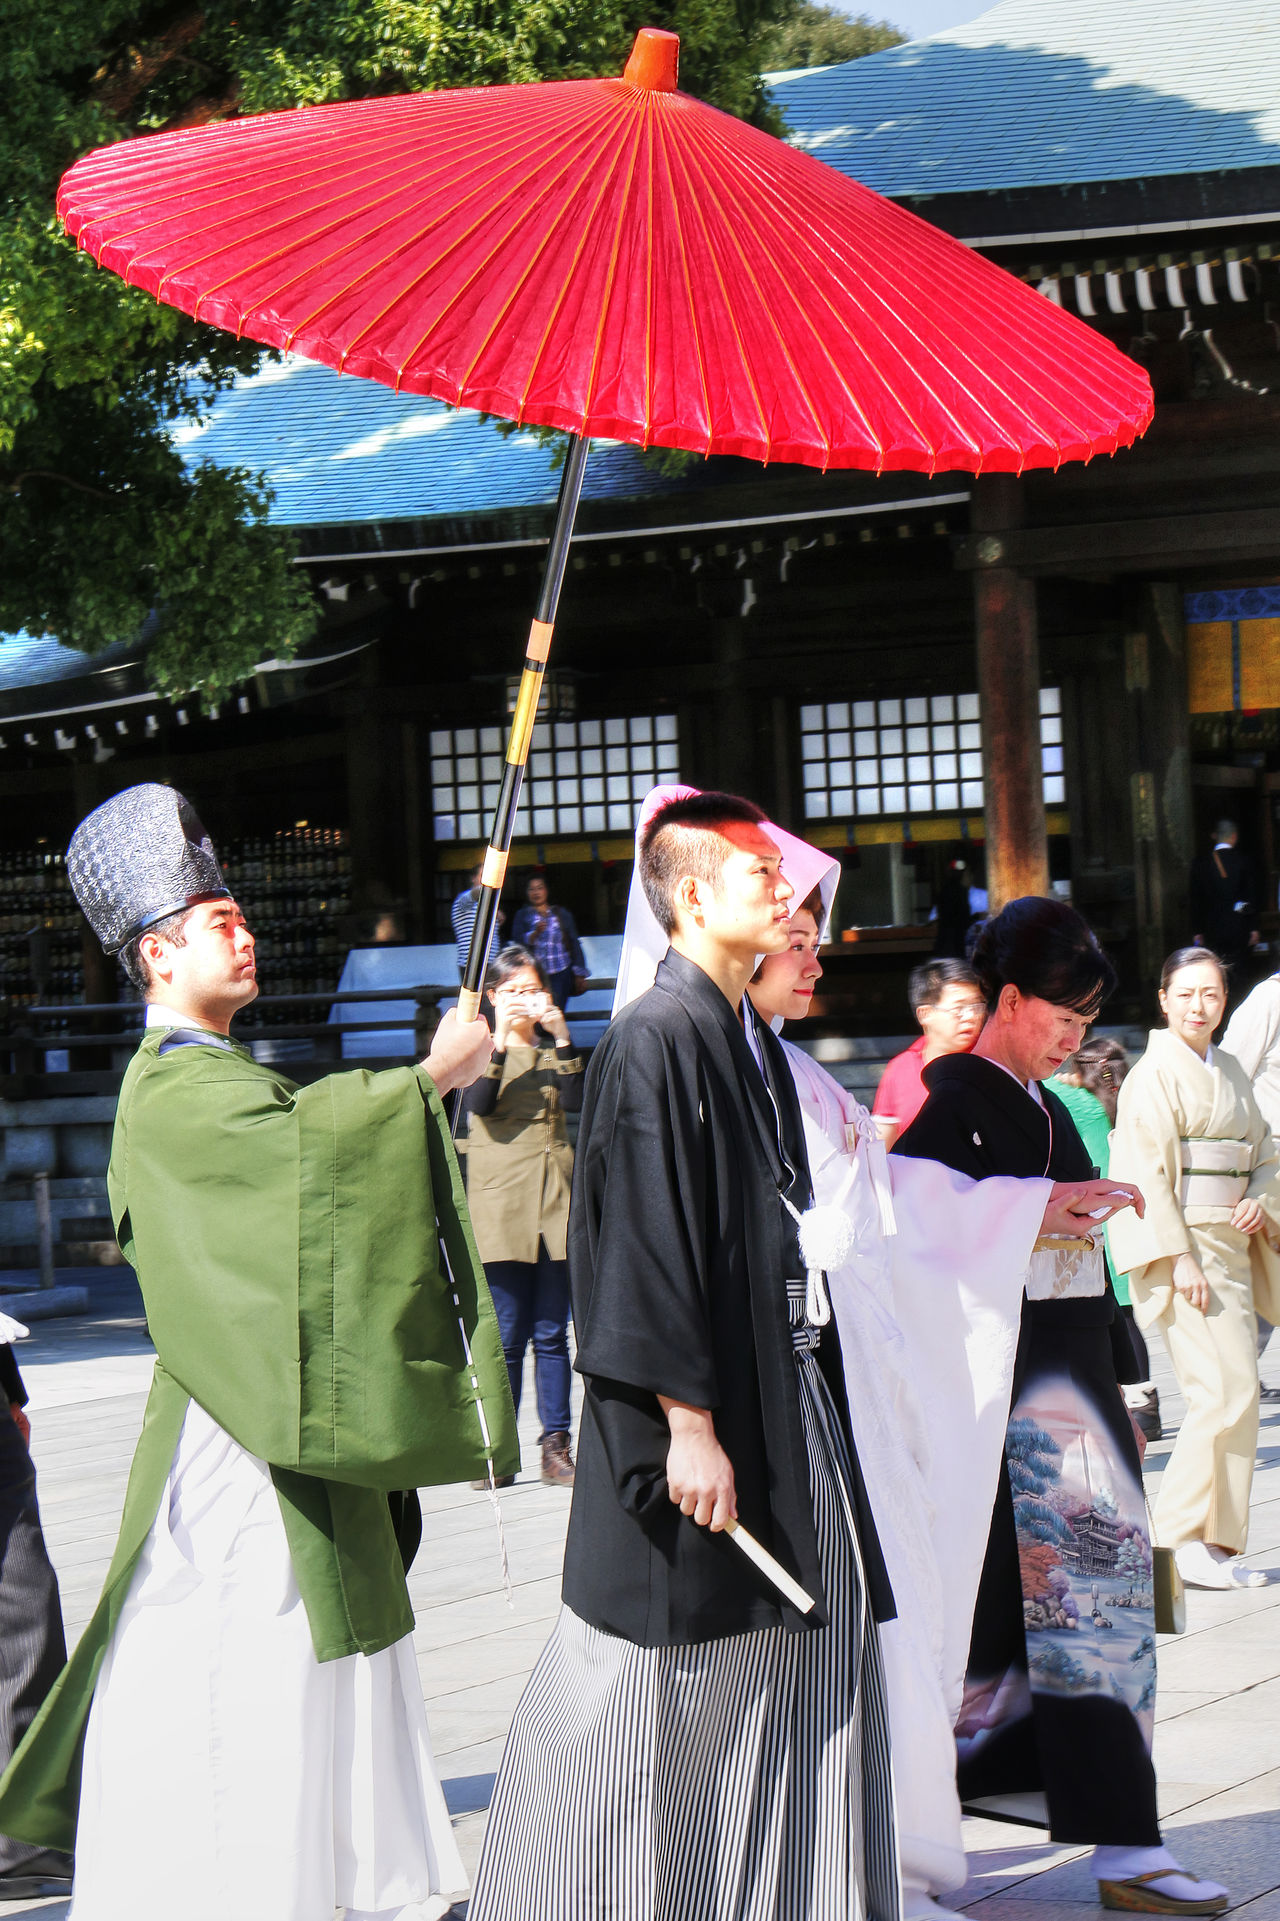 traditional japanese wedding Adult Cultures Day Japan Meiji Shrine Outdoors People Tokyo Traditional Costume Traditional Wedding Wedding Wedding Ceremony Wedding Procession